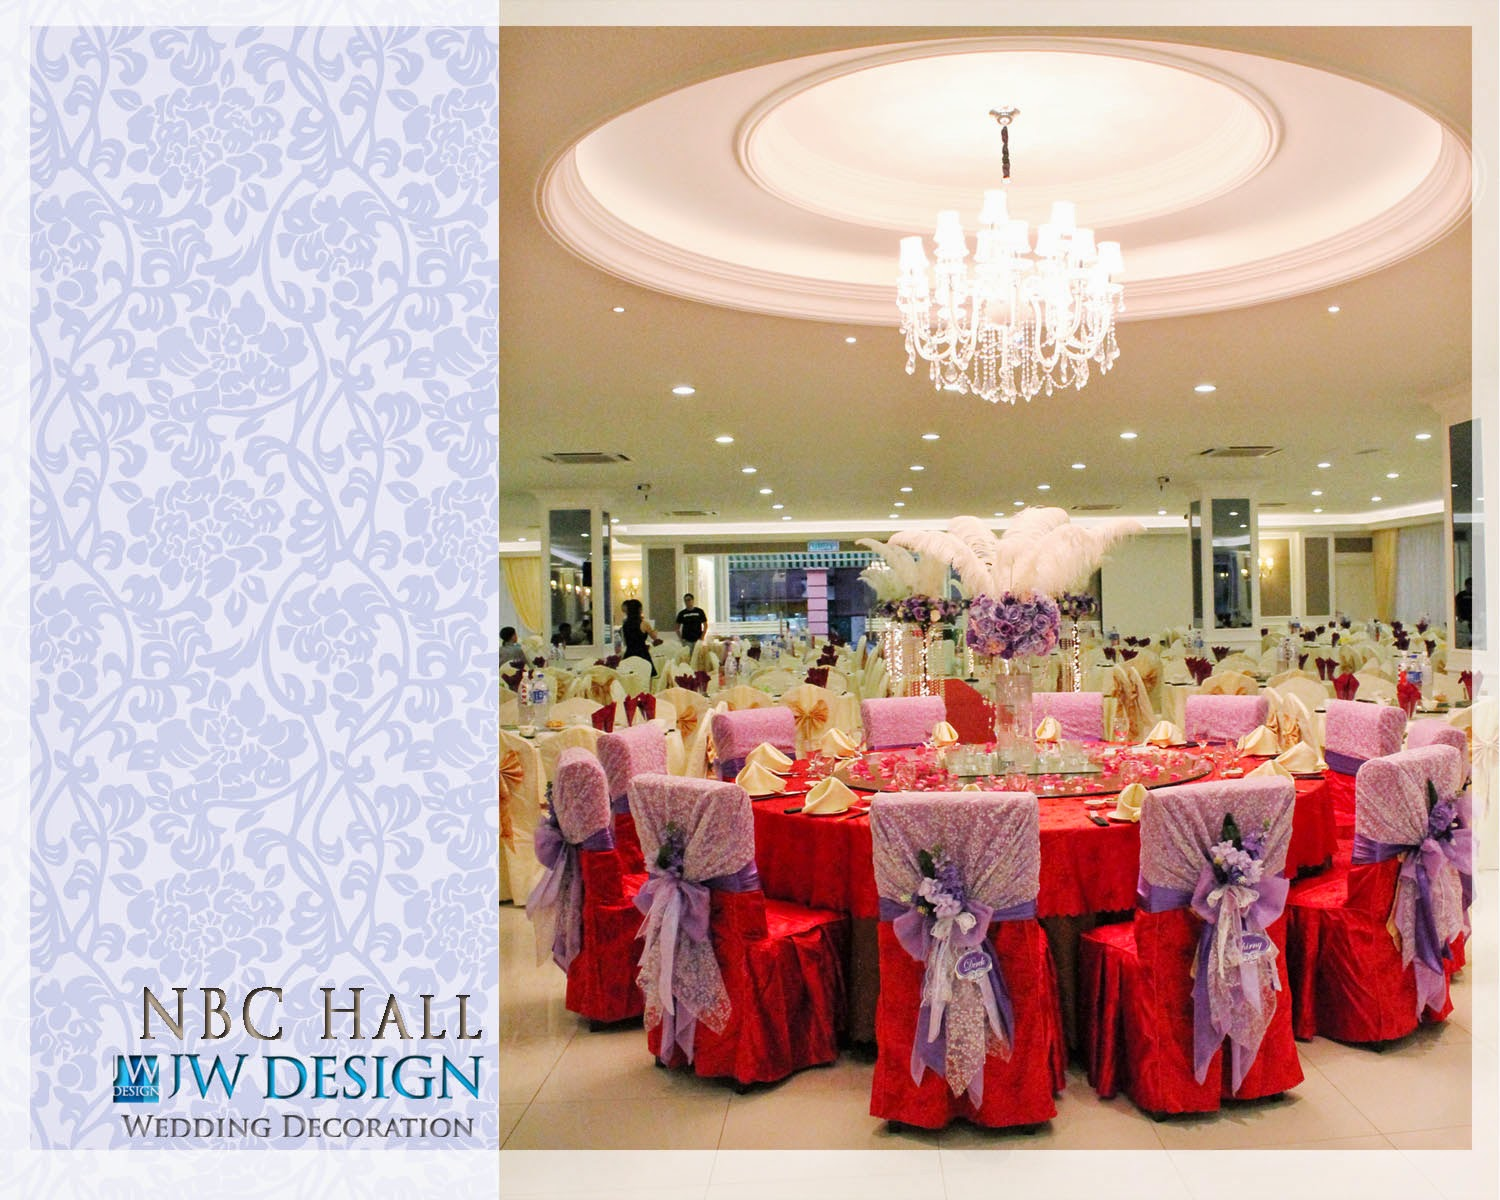 Jw design wedding decoration nbc banquet hall wedding decoration wedding decoration at klang nbc banquet hall junglespirit Gallery